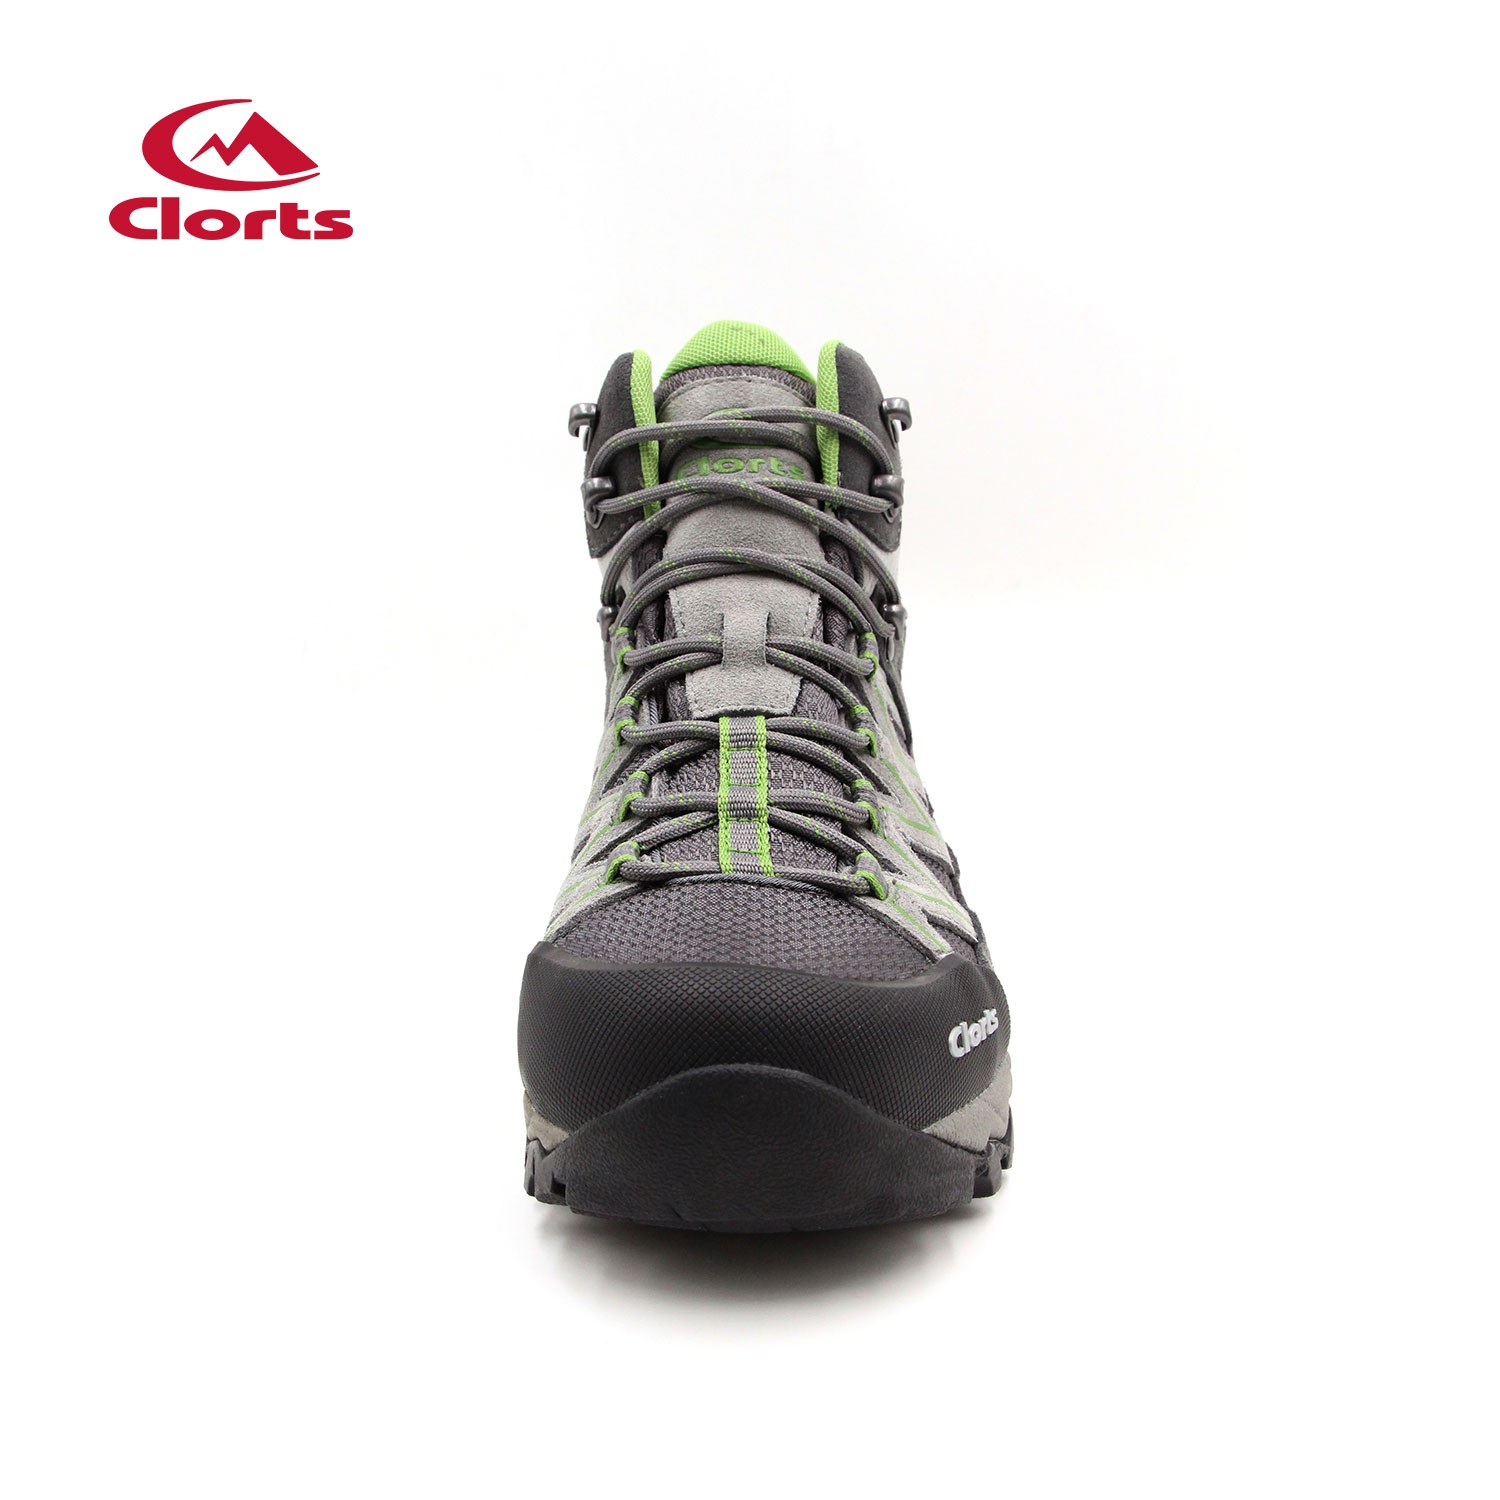 Clorts Adults Backpacking Hiking Boots Green Manufacturers, Clorts Adults Backpacking Hiking Boots Green Factory, Supply Clorts Adults Backpacking Hiking Boots Green